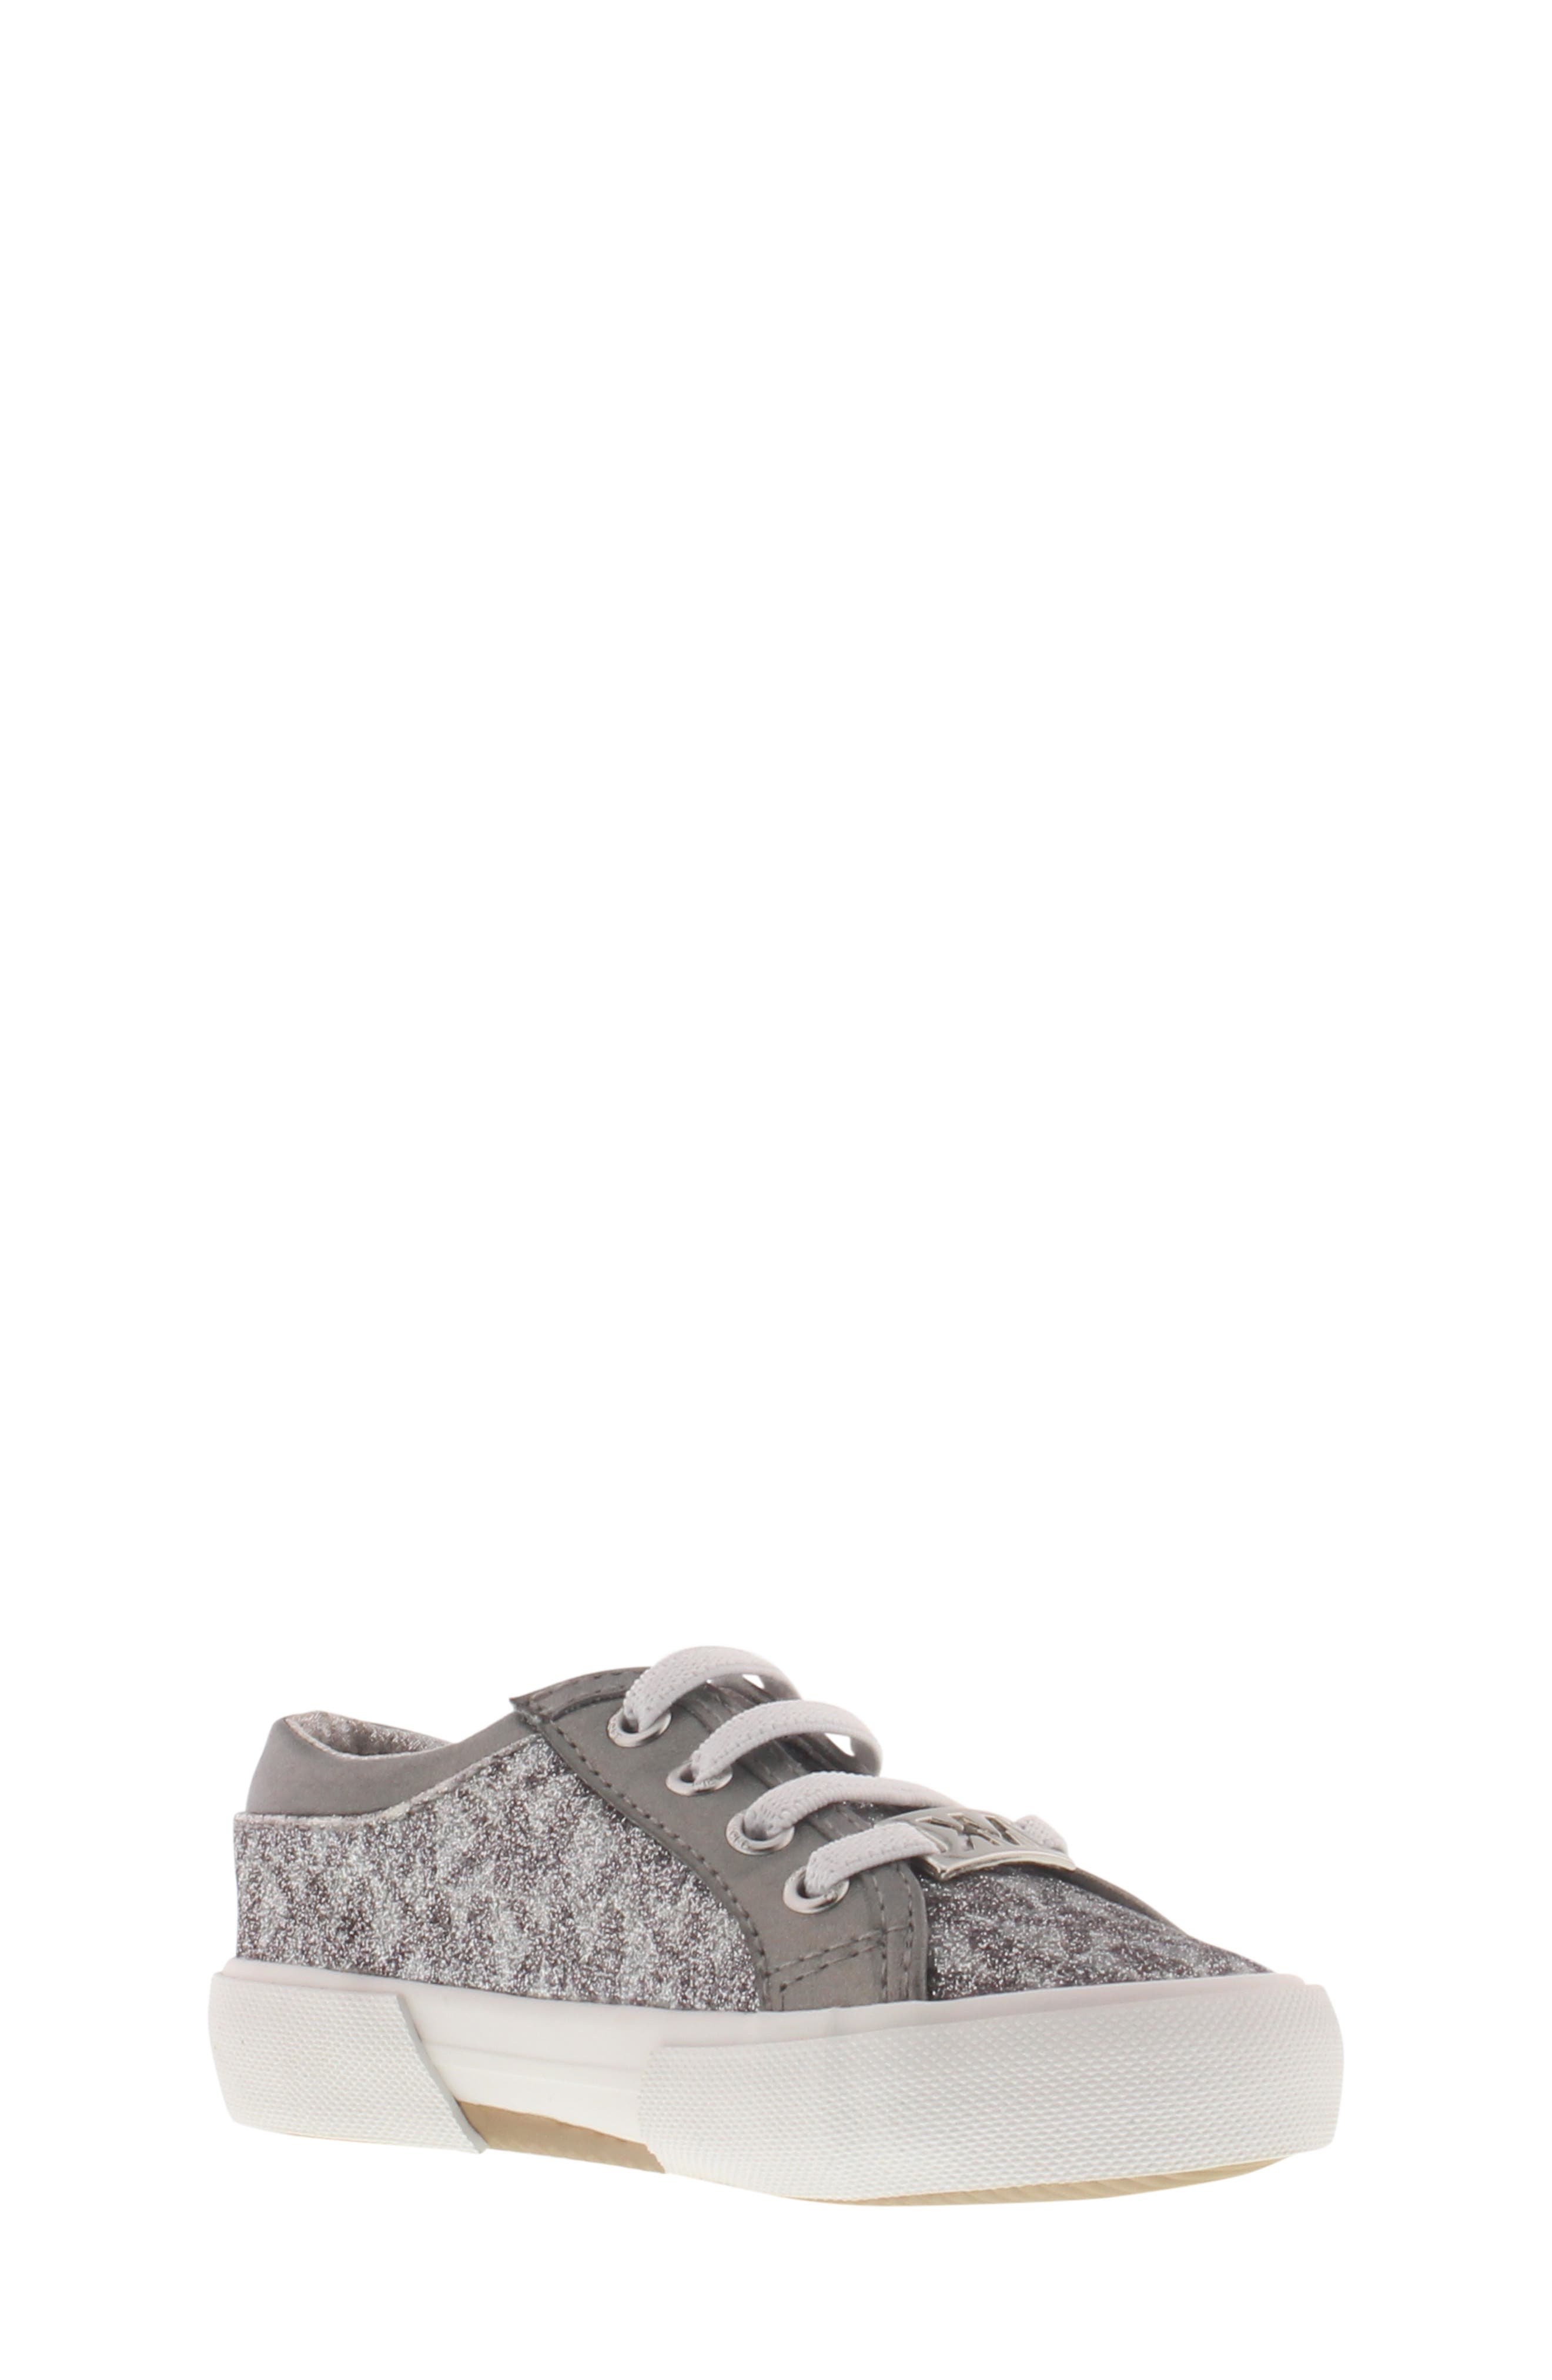 Ima Low Top Sneaker,                         Main,                         color, GUNMETAL/ GUNMETAL